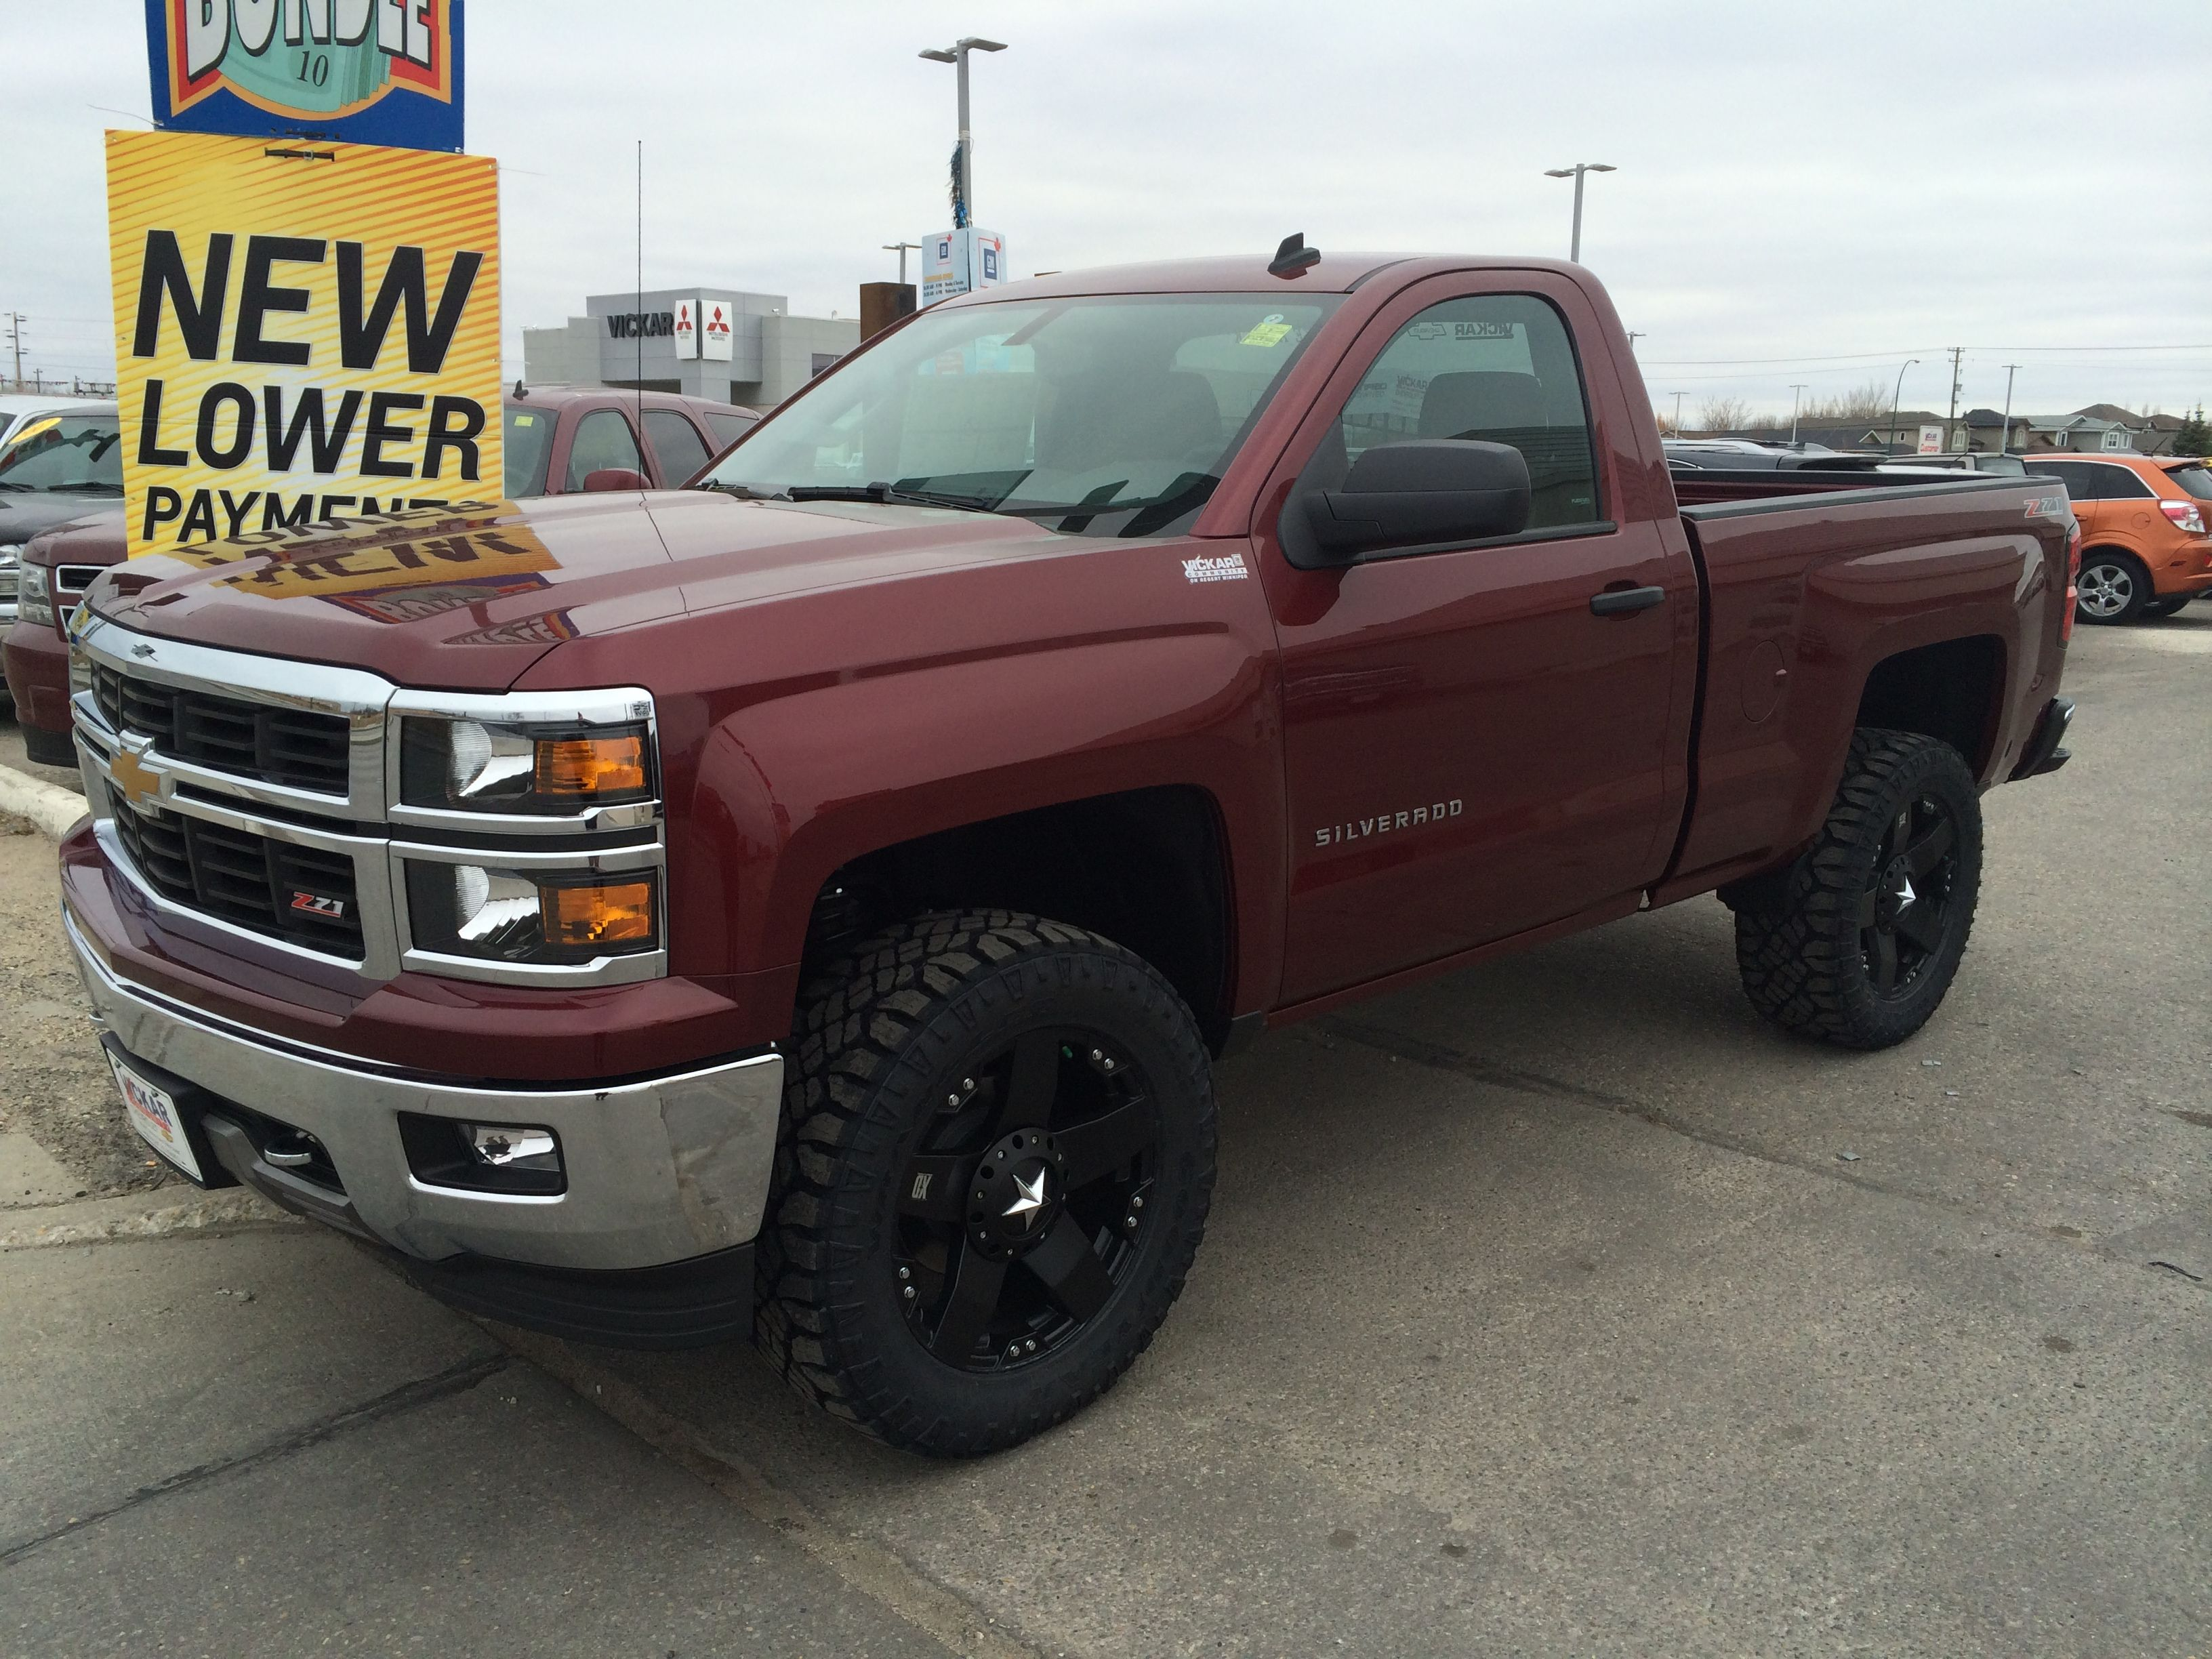 2014 Silverado Reg Cab Short Box Aftermarket 3 Inch Lift Wheels And Rubber Contact Us For Information On This Bea Single Cab Trucks Chevy Trucks Gmc Trucks